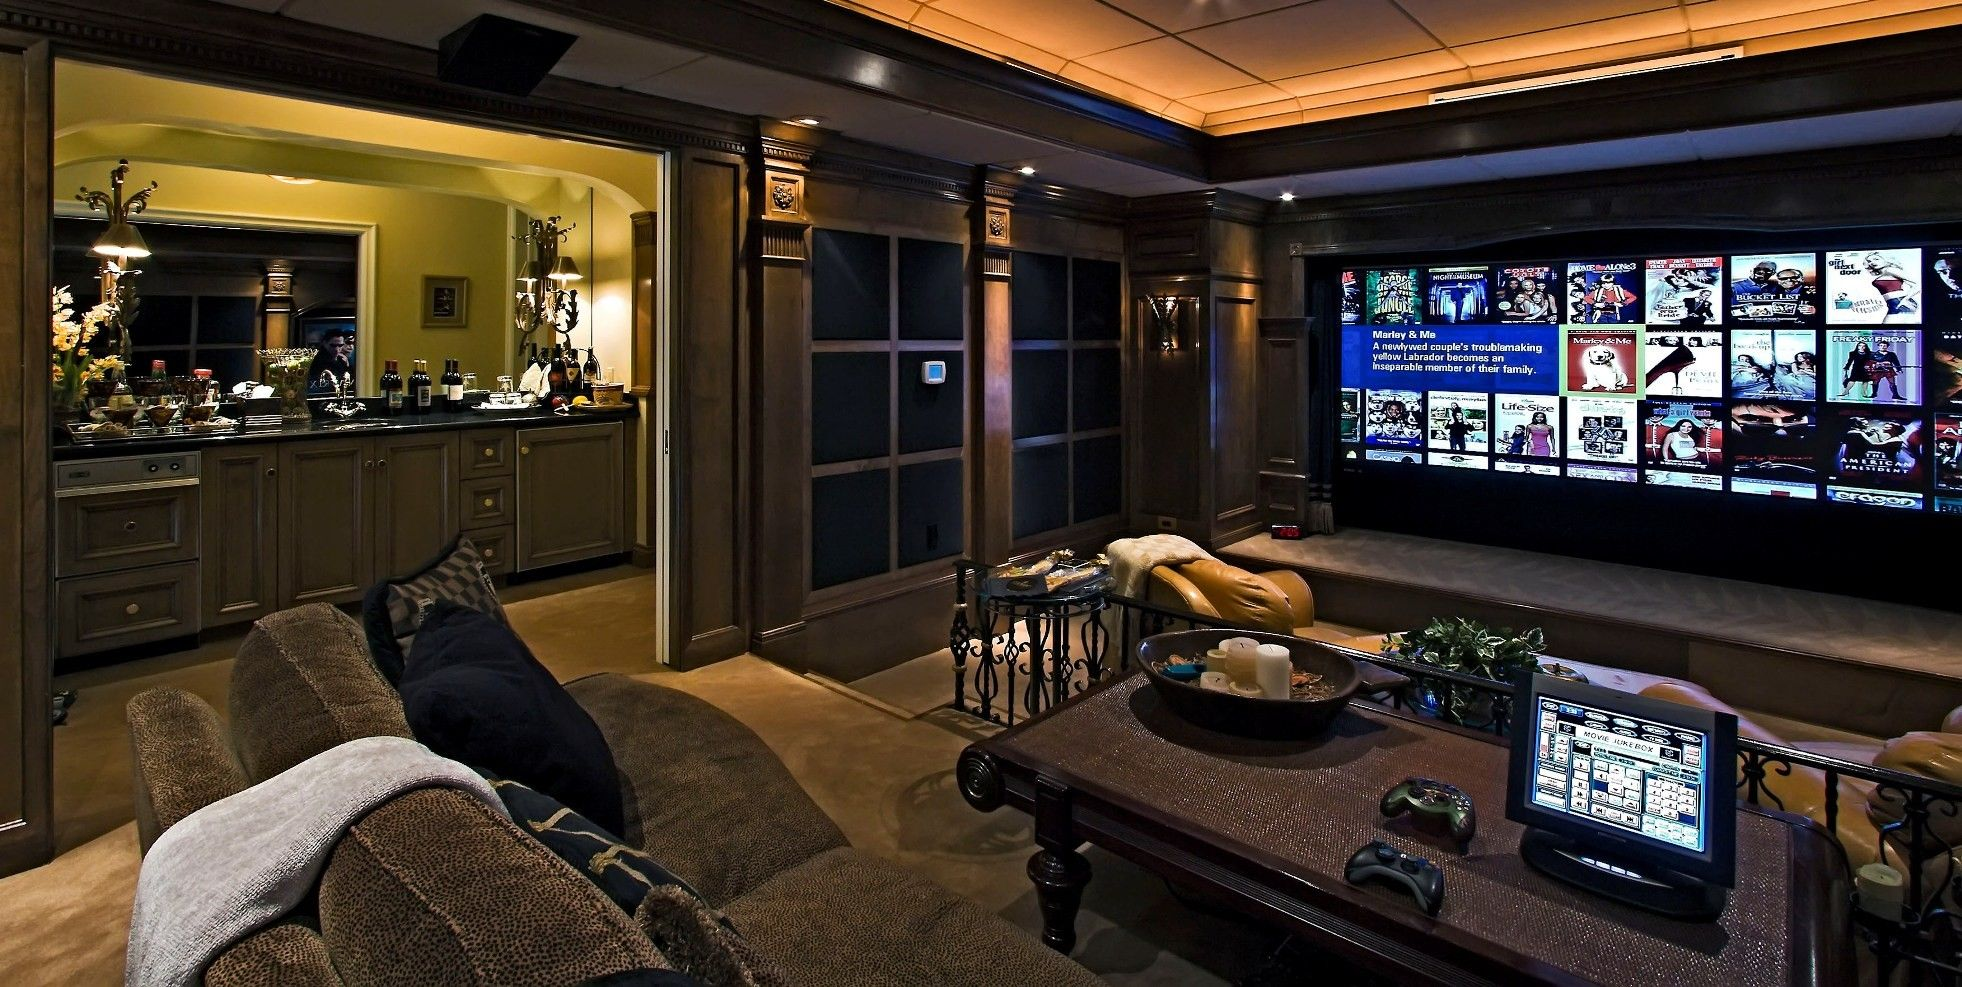 Marvellous Design For Home Theatre Setup Ideas With Dark Brown ...